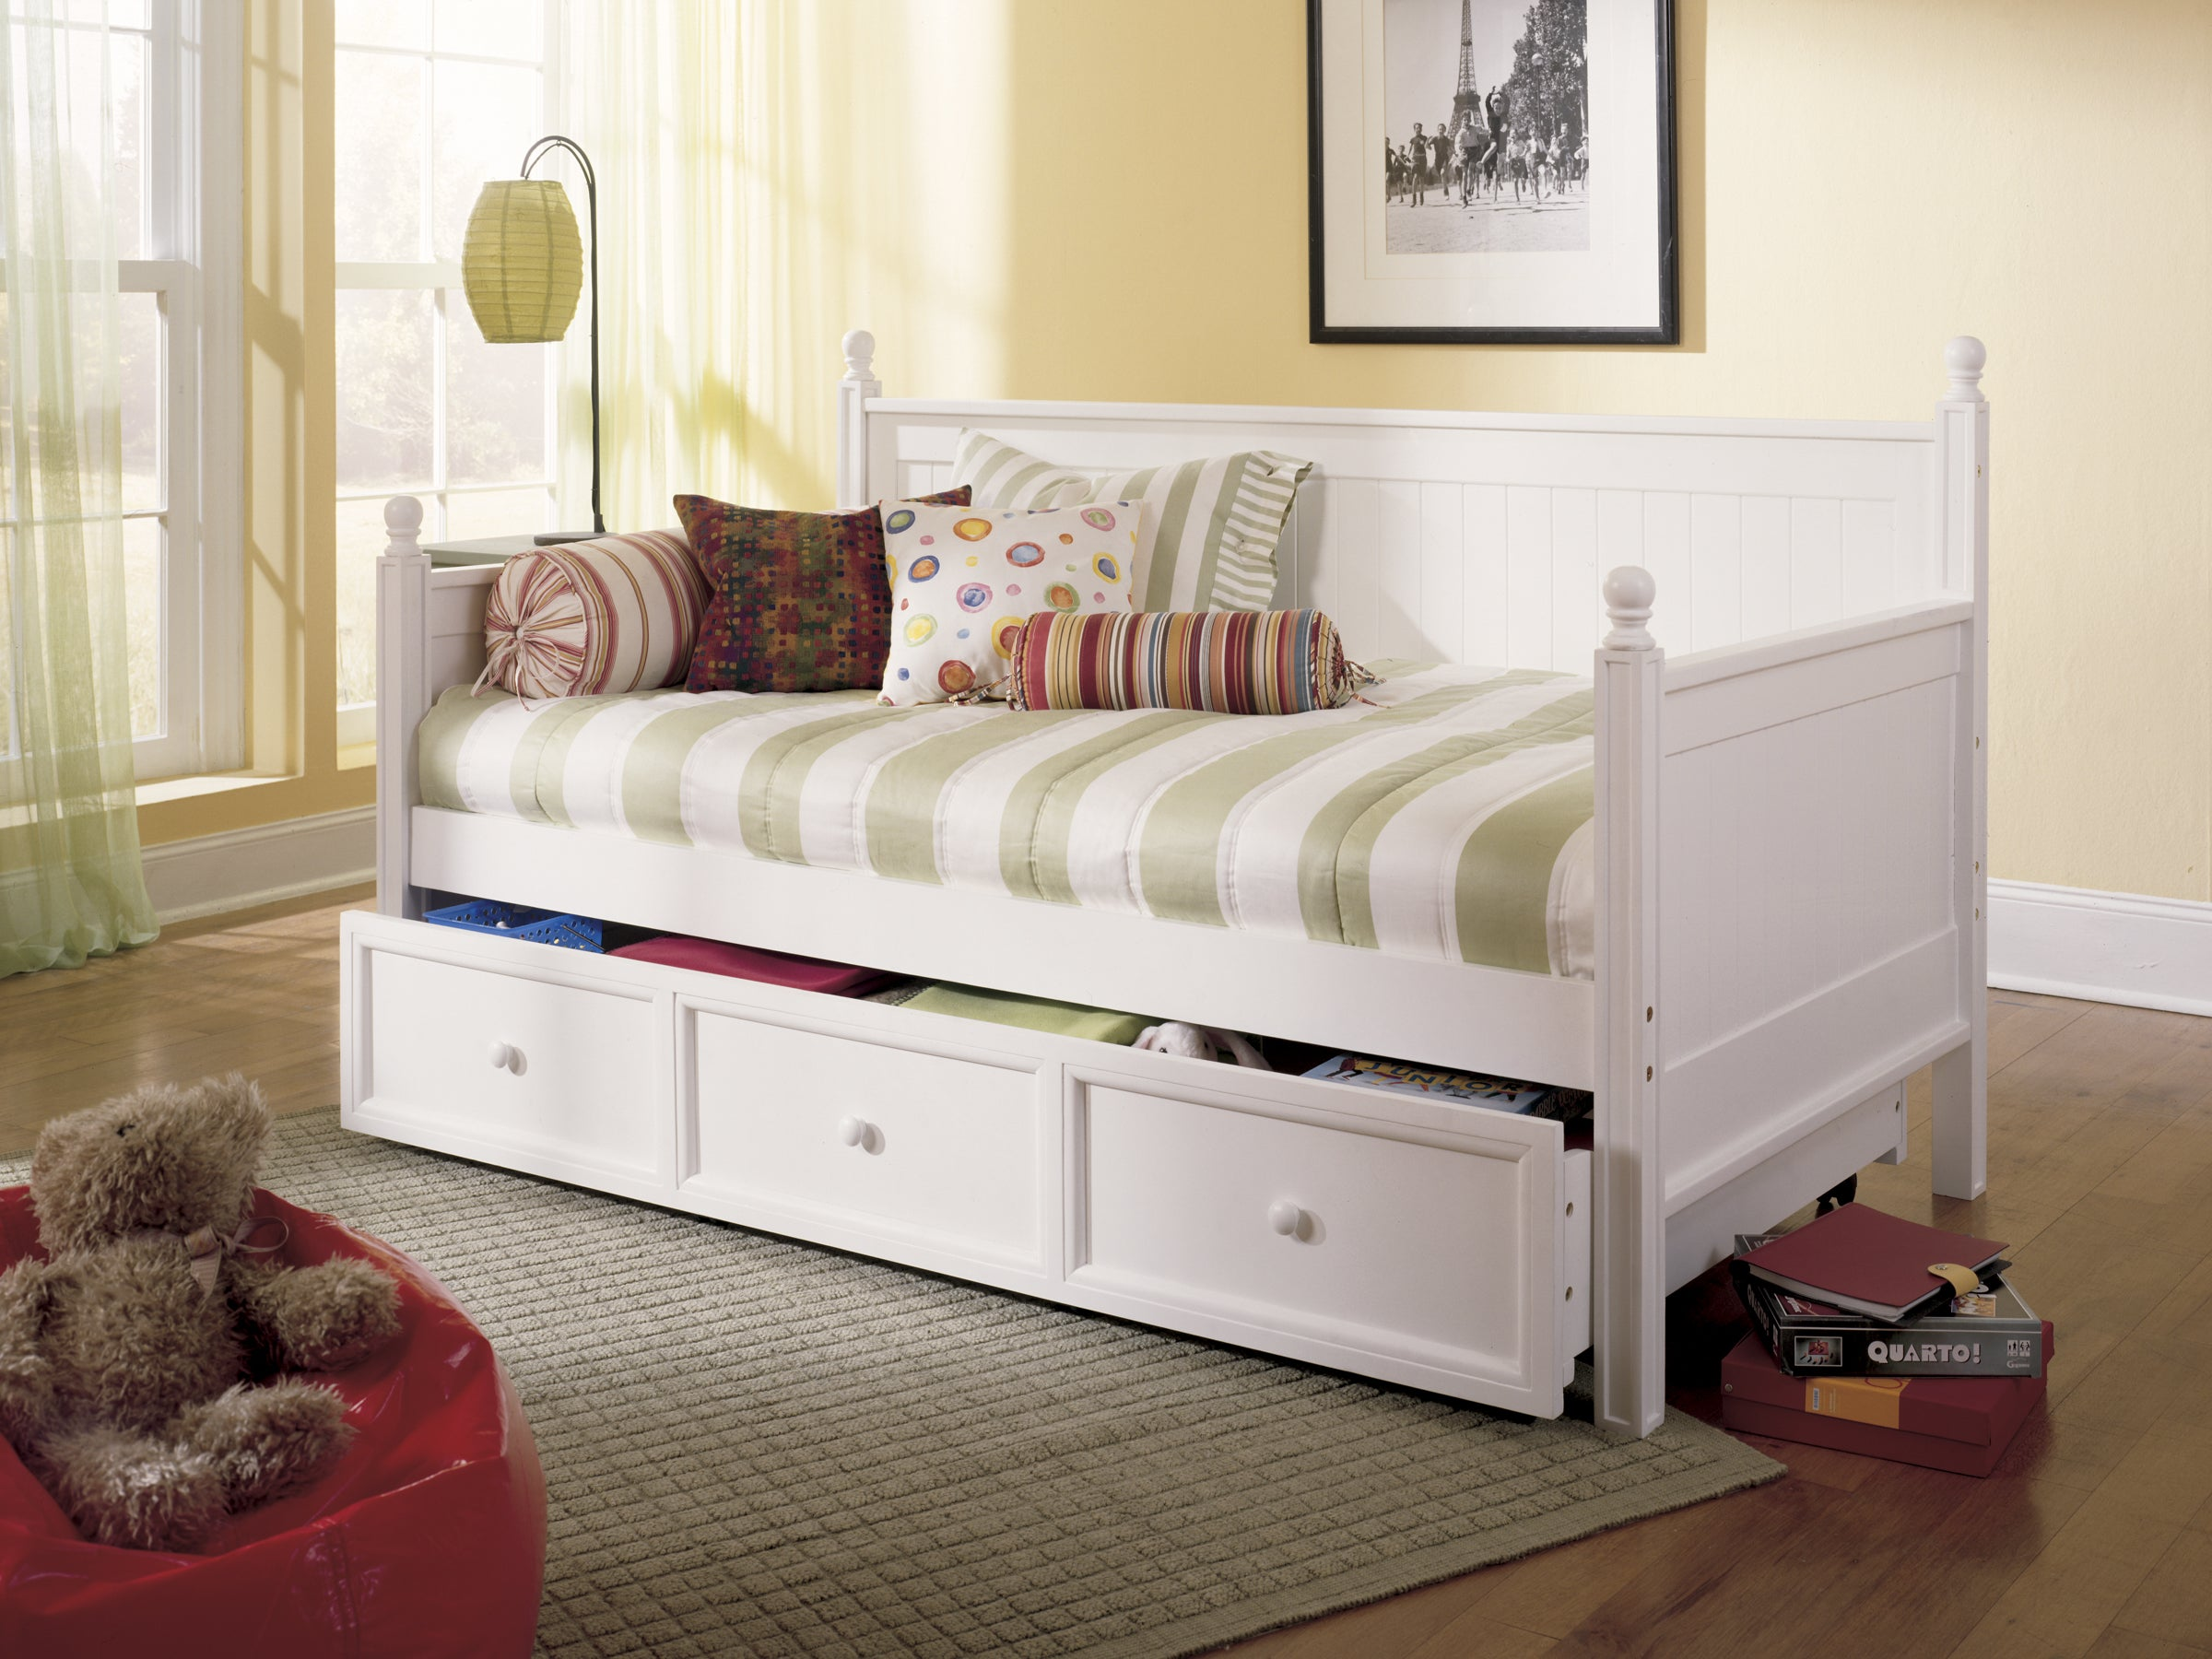 Fashion Bed Group Casey Twin Trundle Daybed (White - Whit...